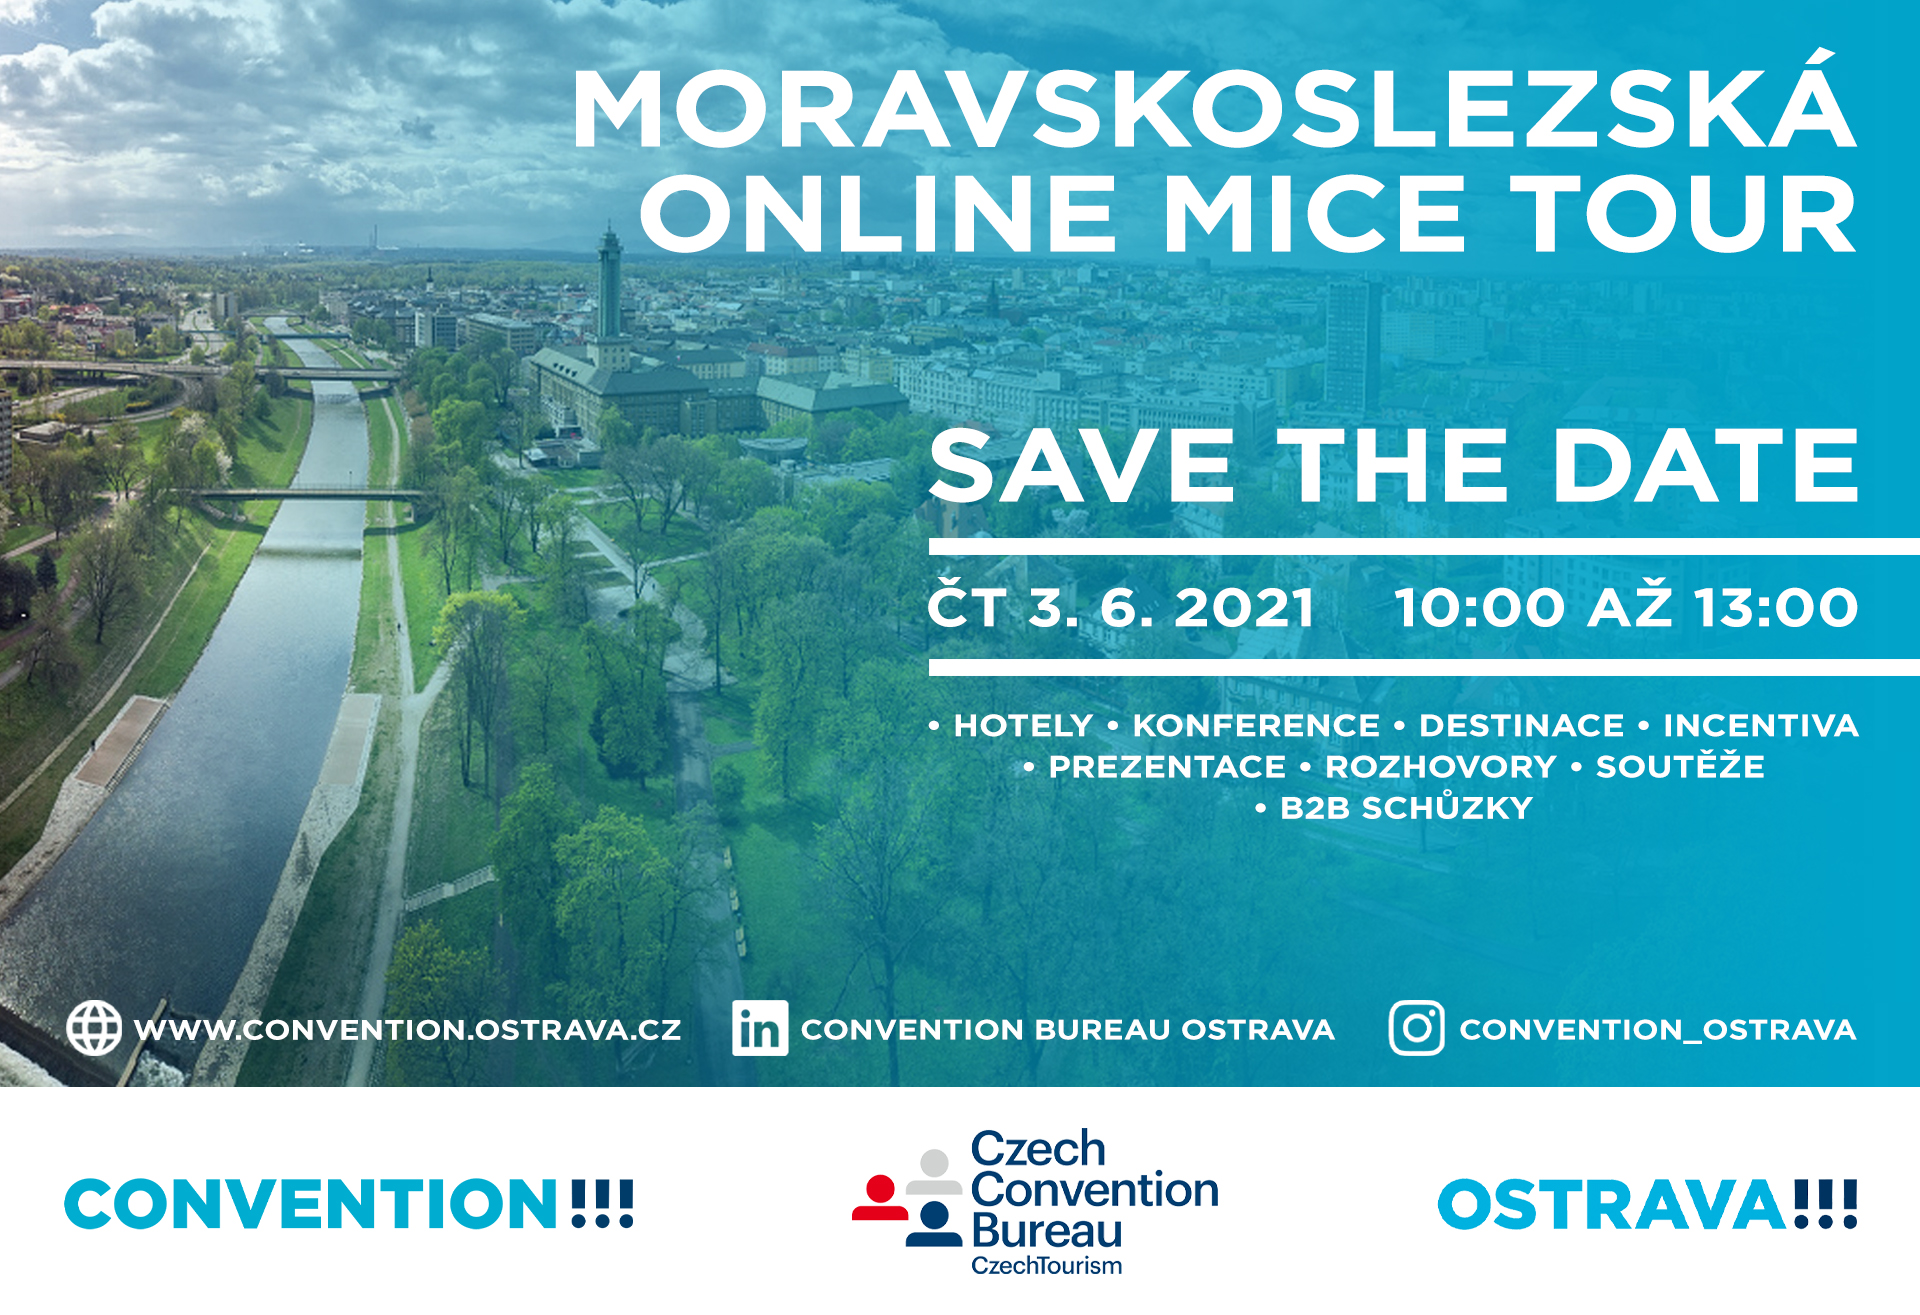 Moravskoslezská online MICE tour - save the date